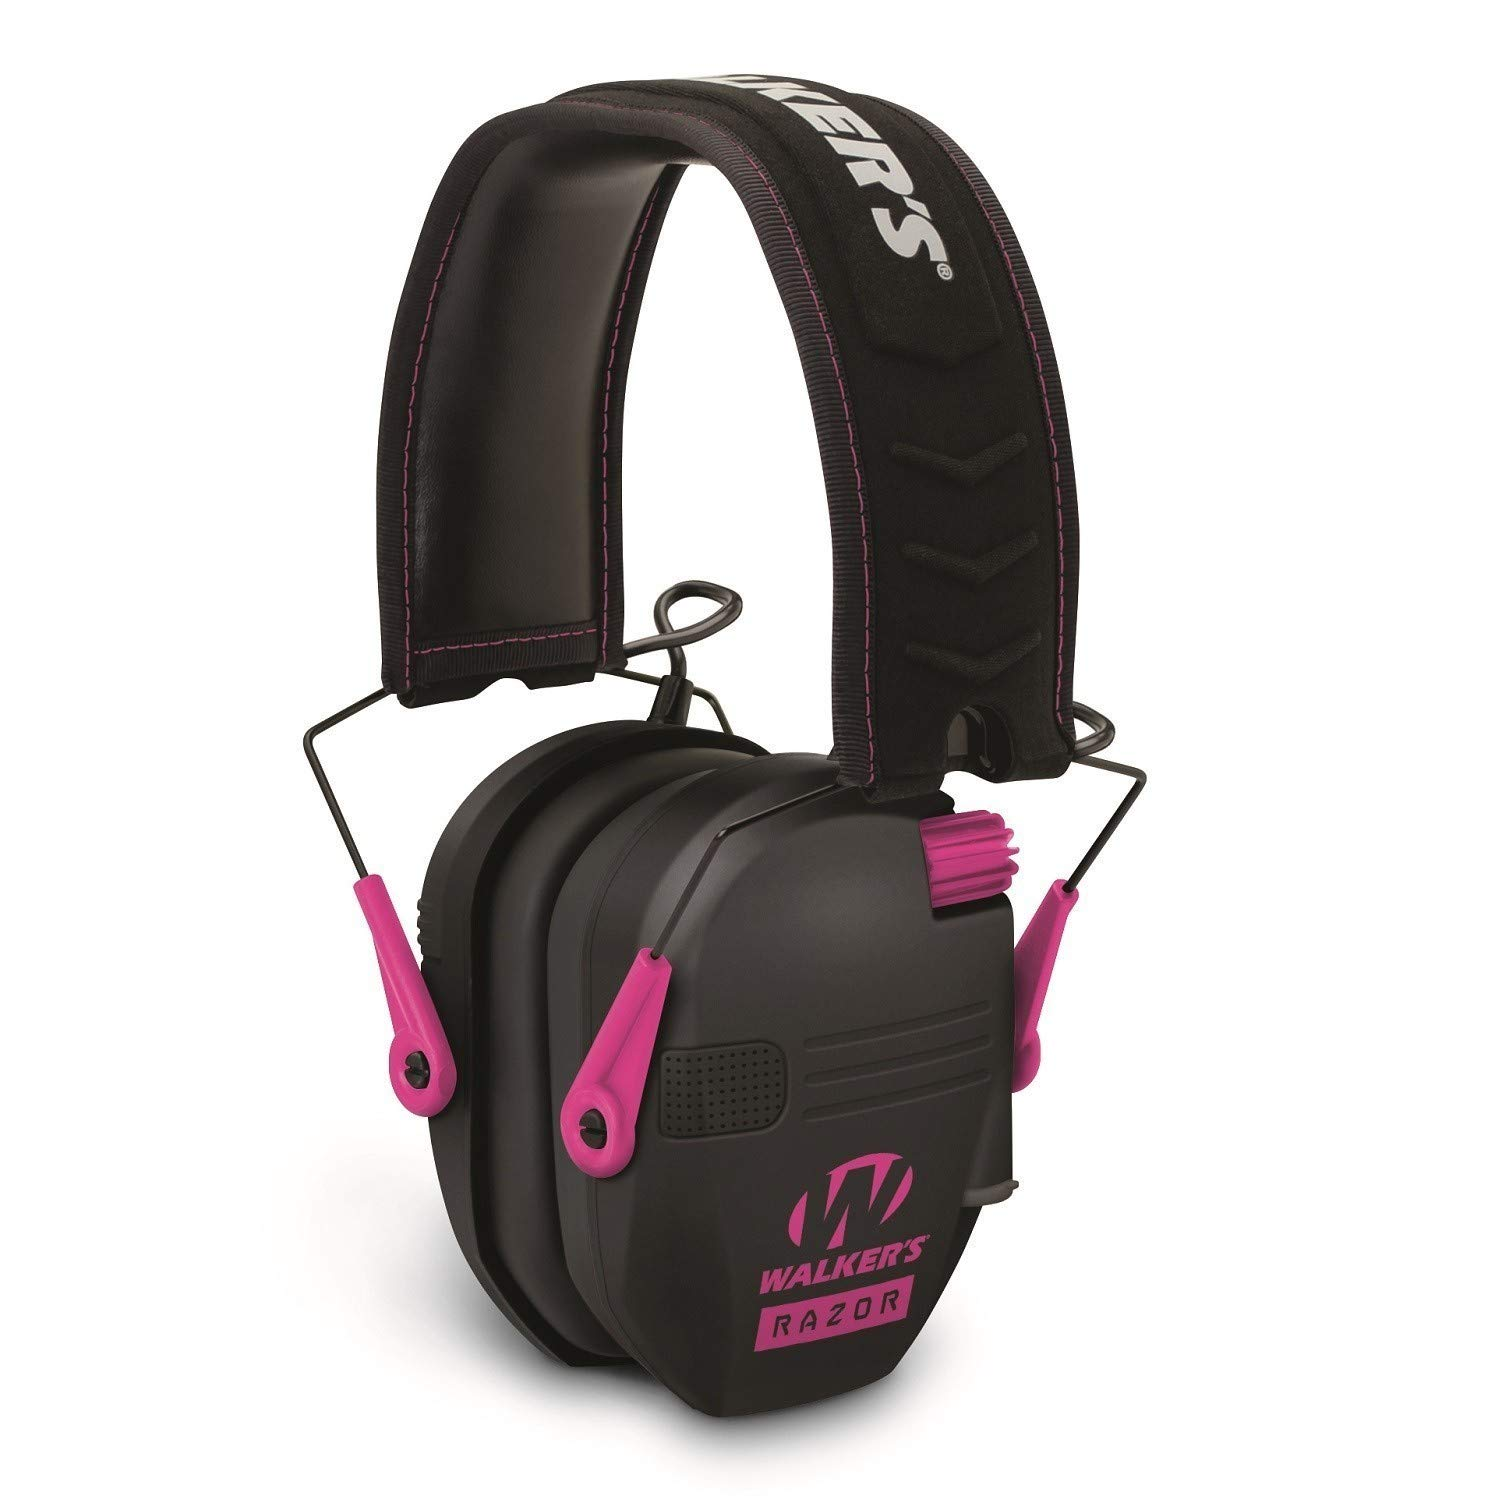 Walkers Razor Slim Electronic Shooting Hearing Protection Muff (Sound Amplification and Suppression) with Protective Case, Black/Pink by Walkers (Image #3)